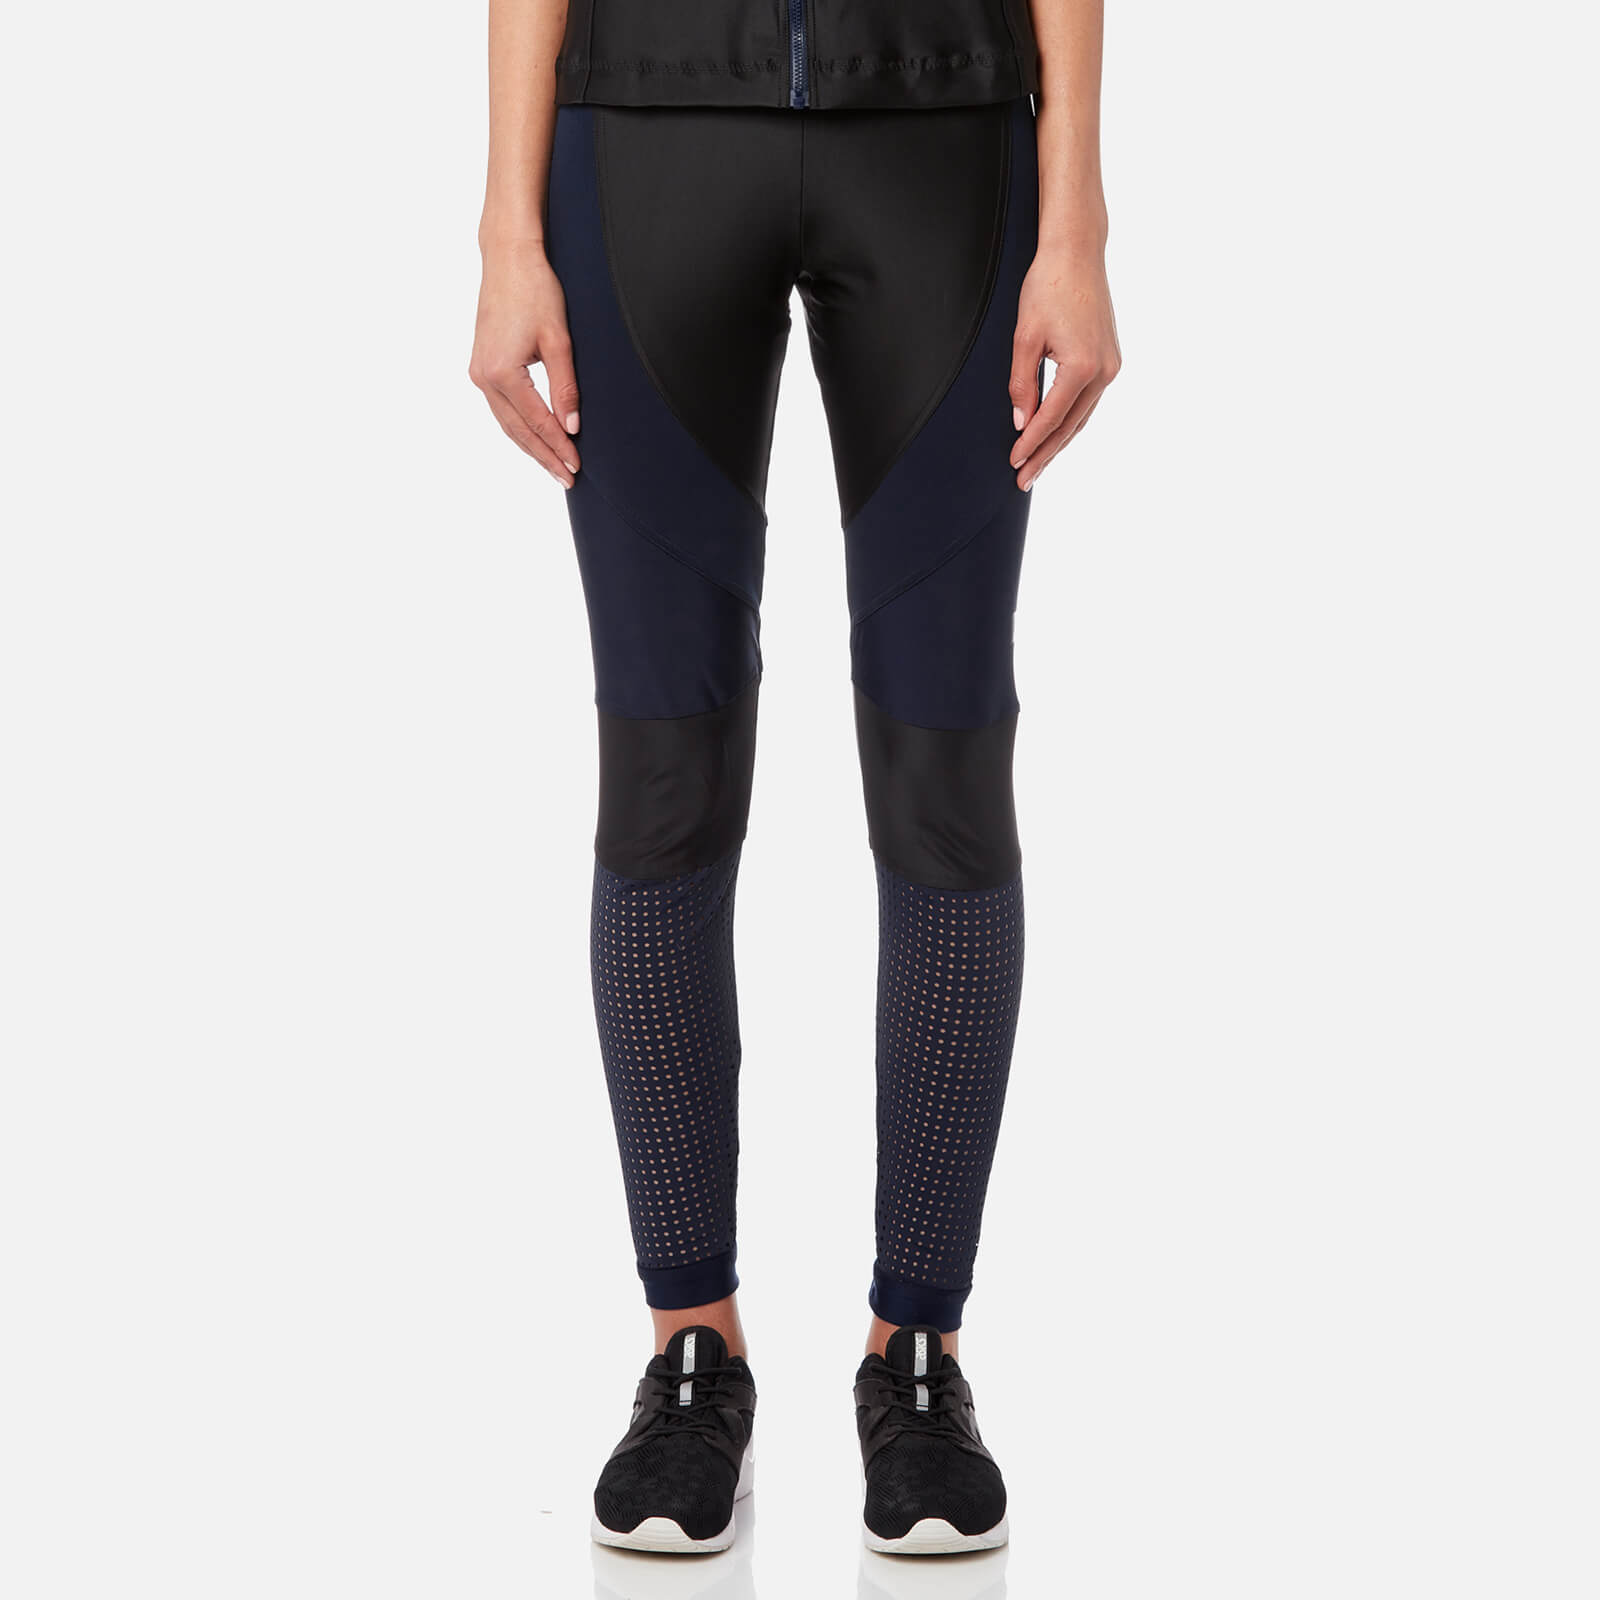 6a62ca1bc8f adidas by Stella McCartney Women's Run Tights - Black/Collegiate Navy -  Free UK Delivery over £50